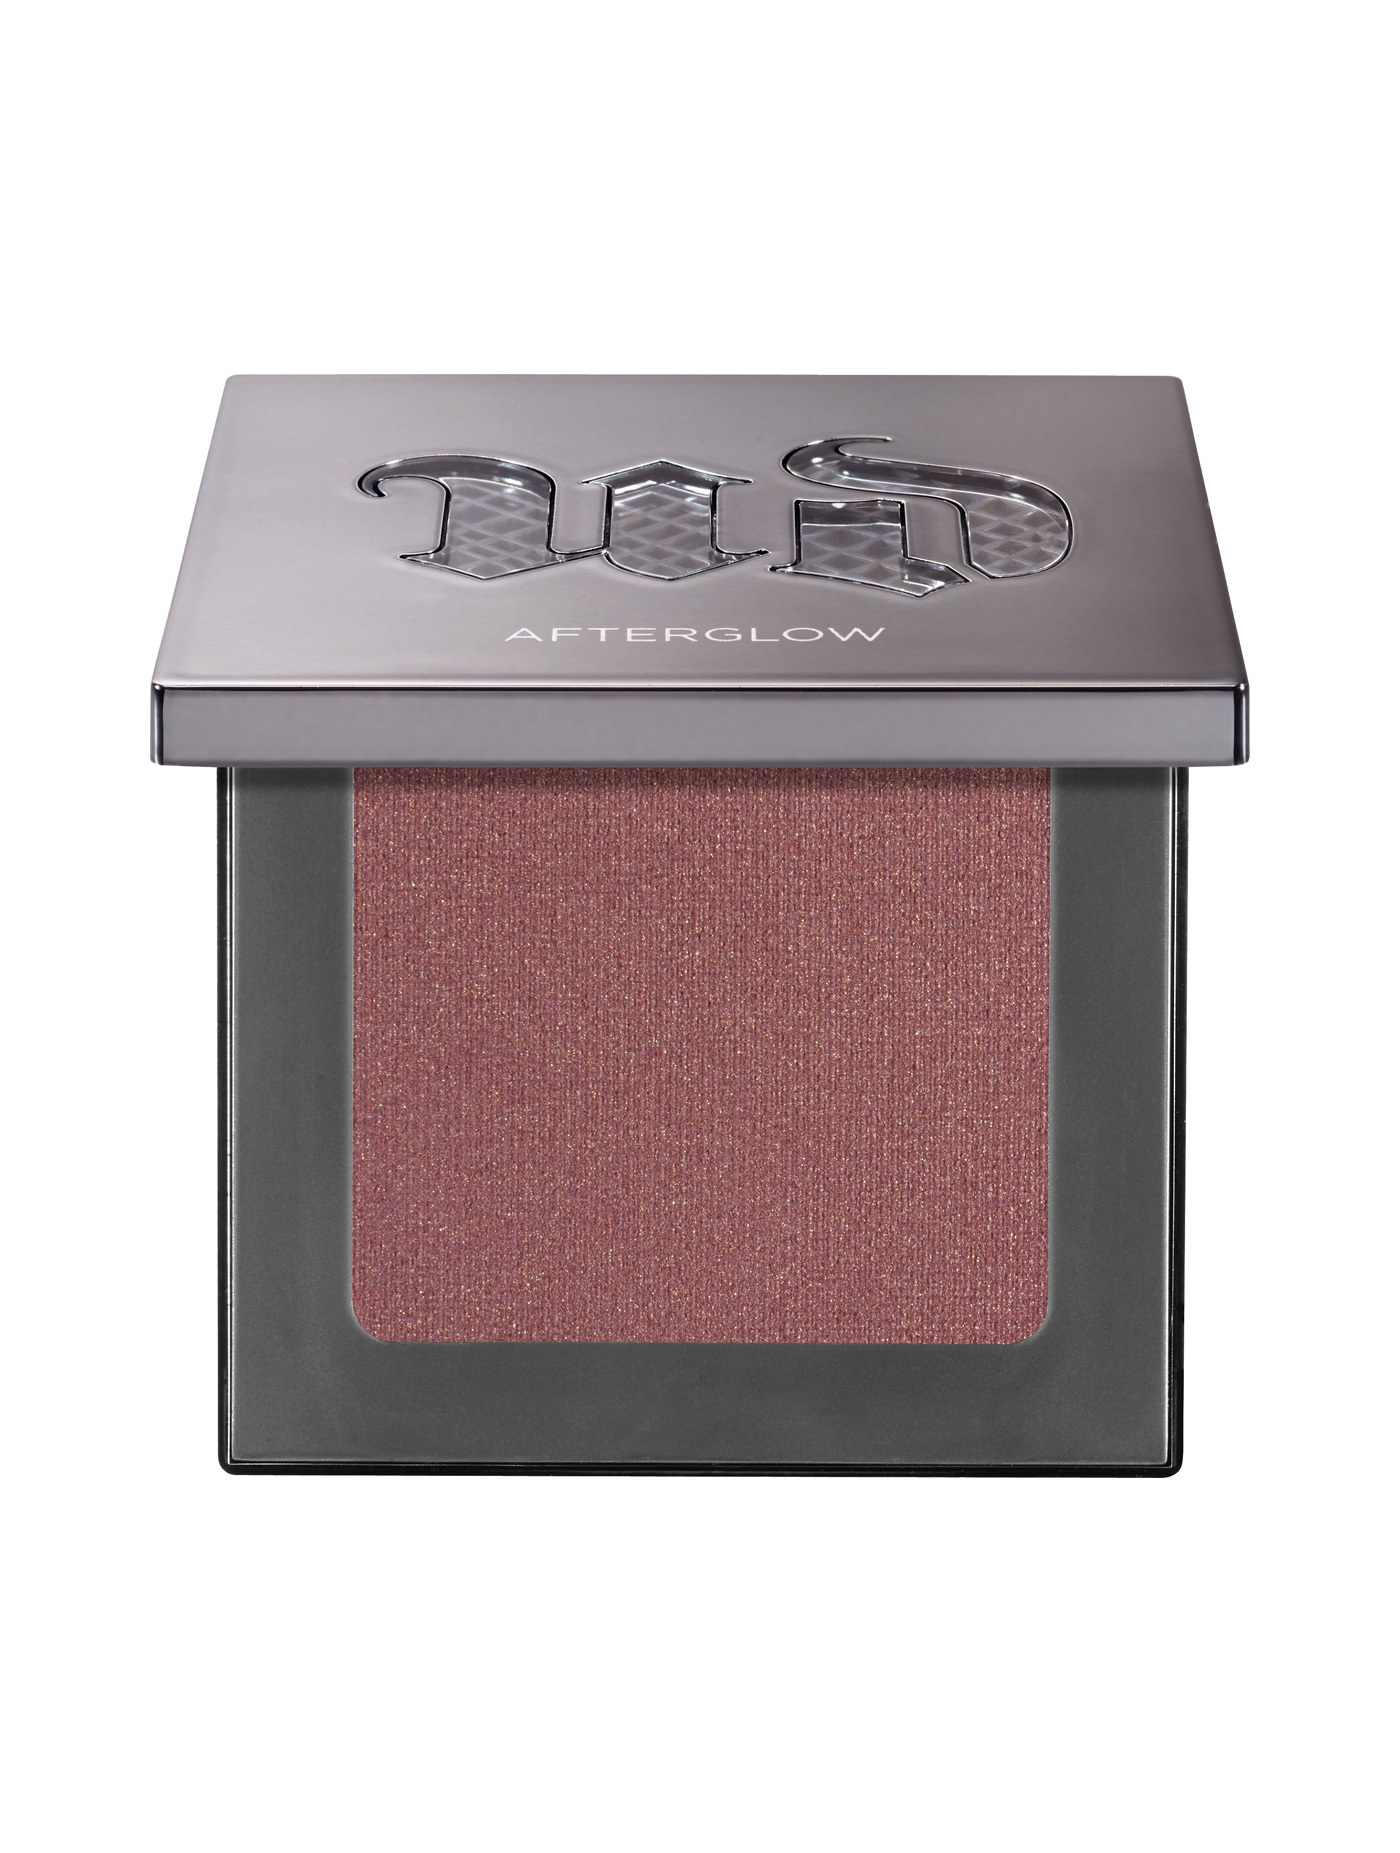 URBAN DECAY Afterglow 8-Hour Powder Blush #Rapture 送料無料